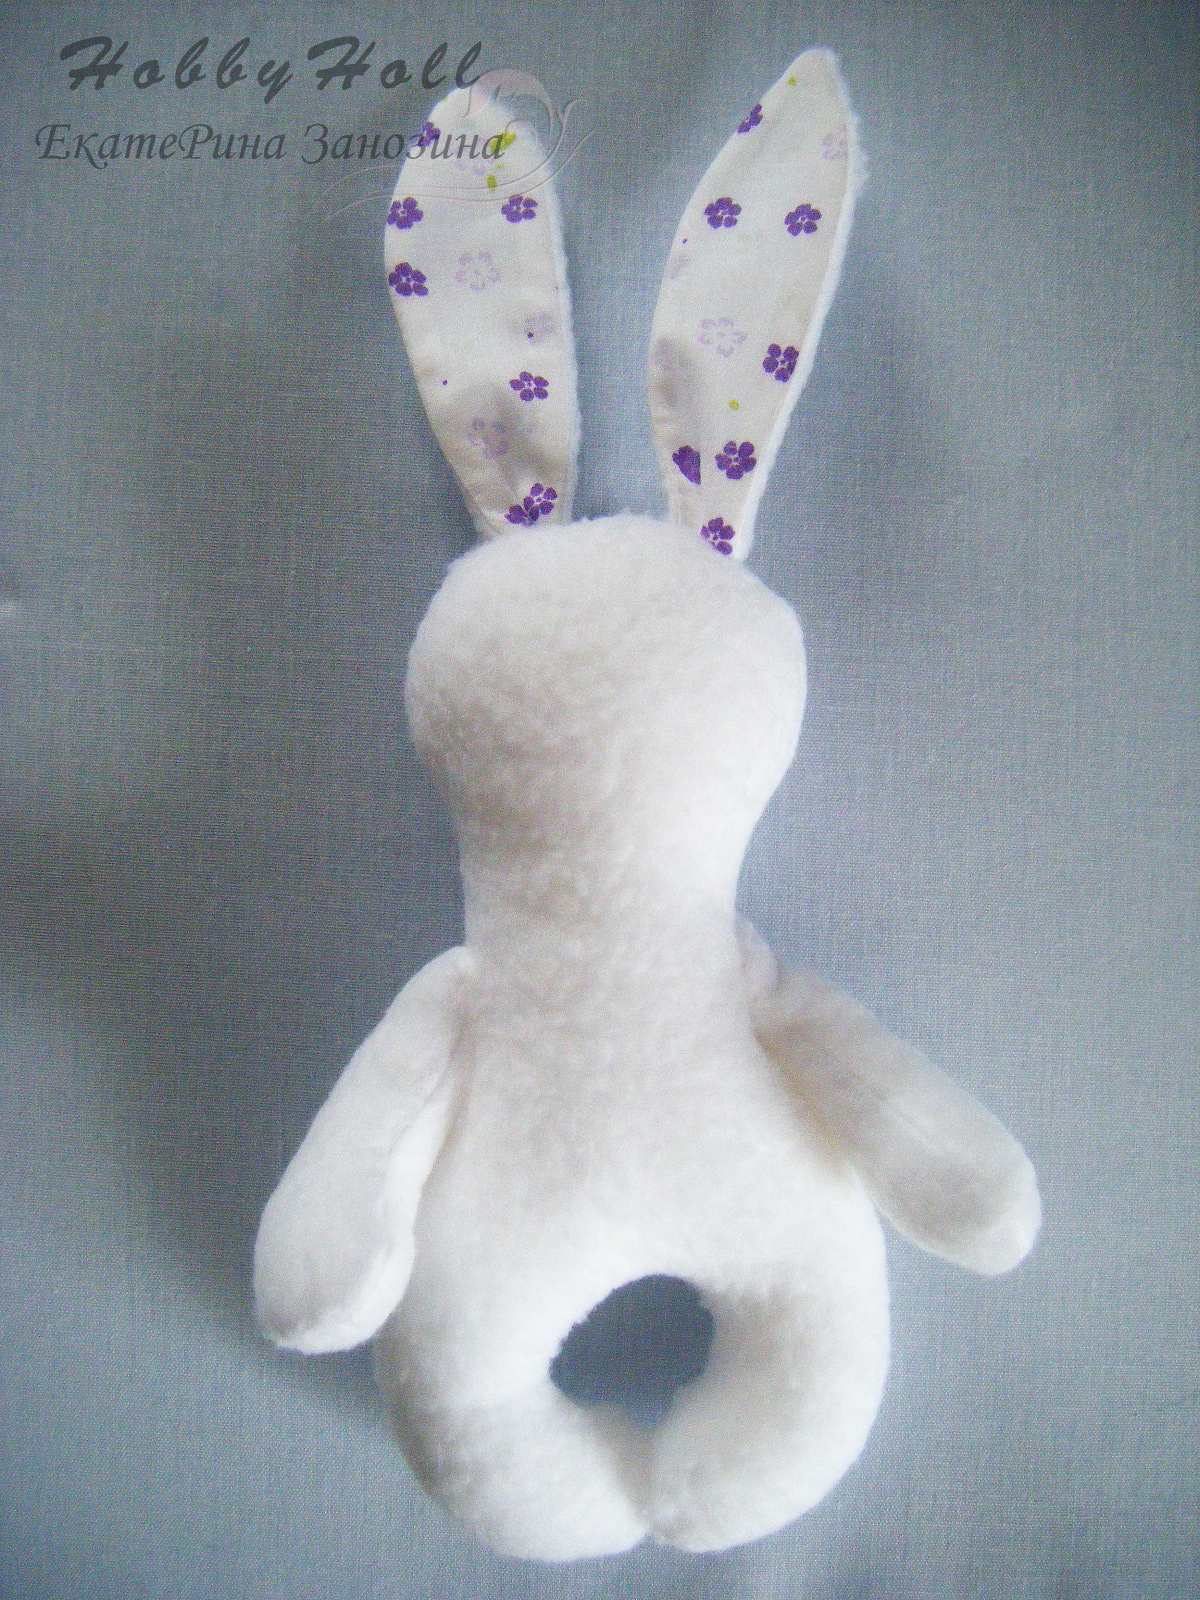 How-to-Make-an-Adorable-Felted-Bunny-8.jpg